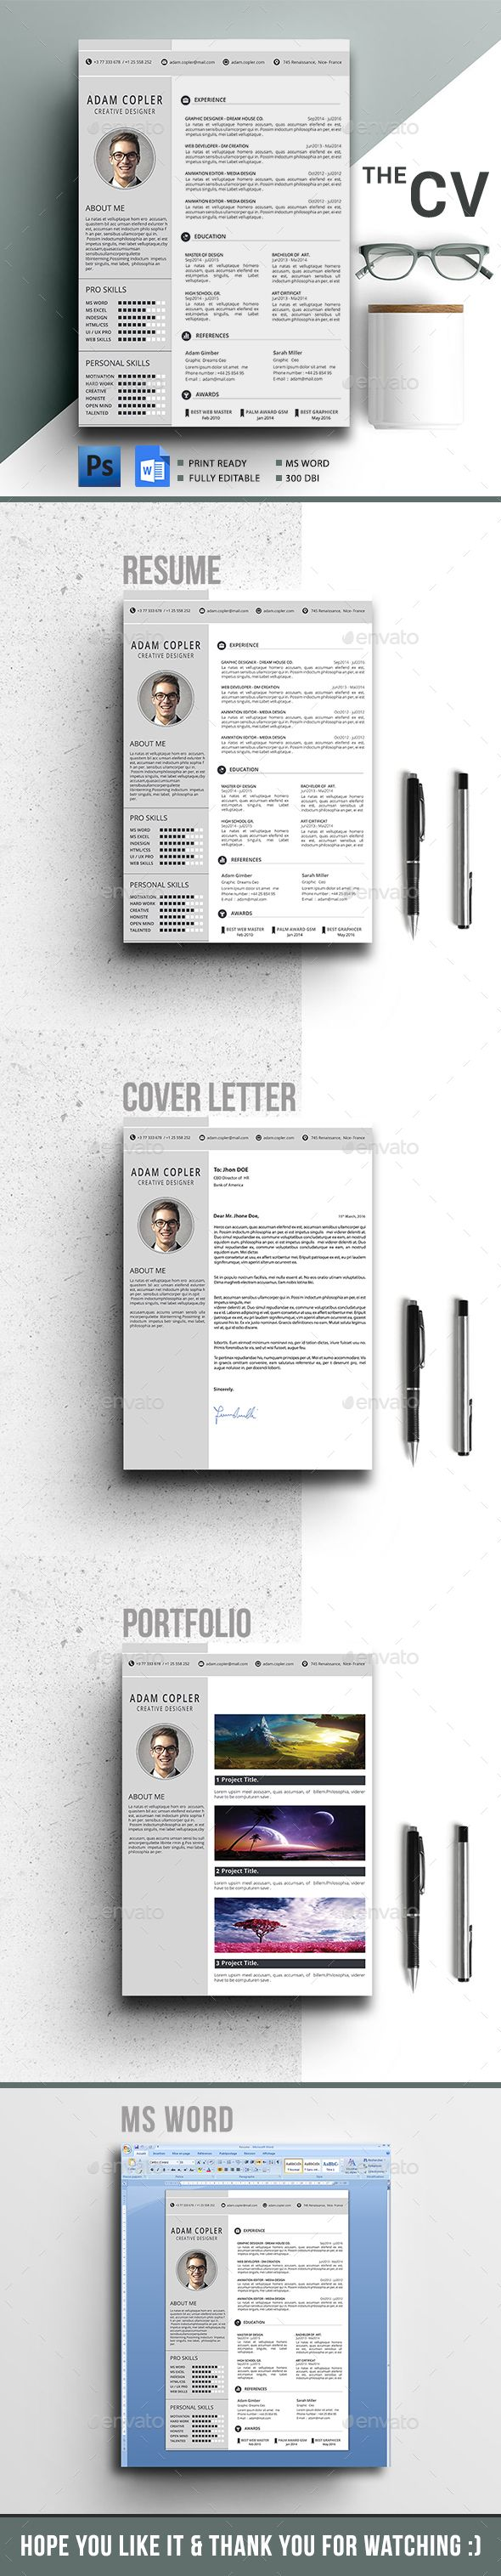 Functional Resume Template Microsoft%0A  Resume Template